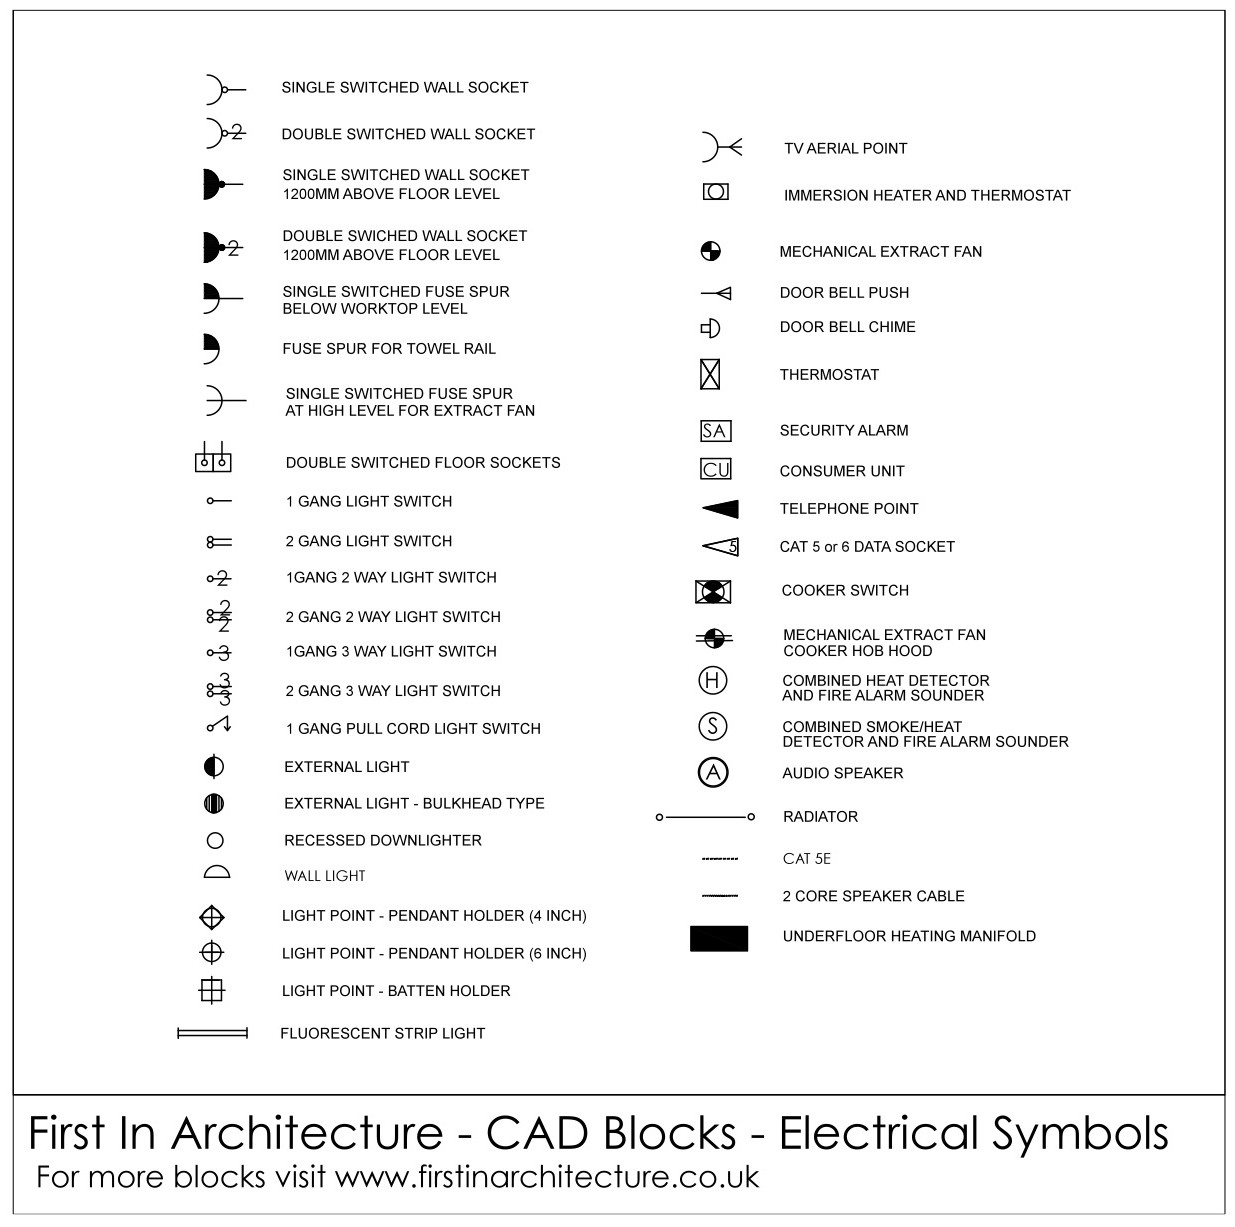 Free CAD Blocks  Electrical Symbols | First In Architecture